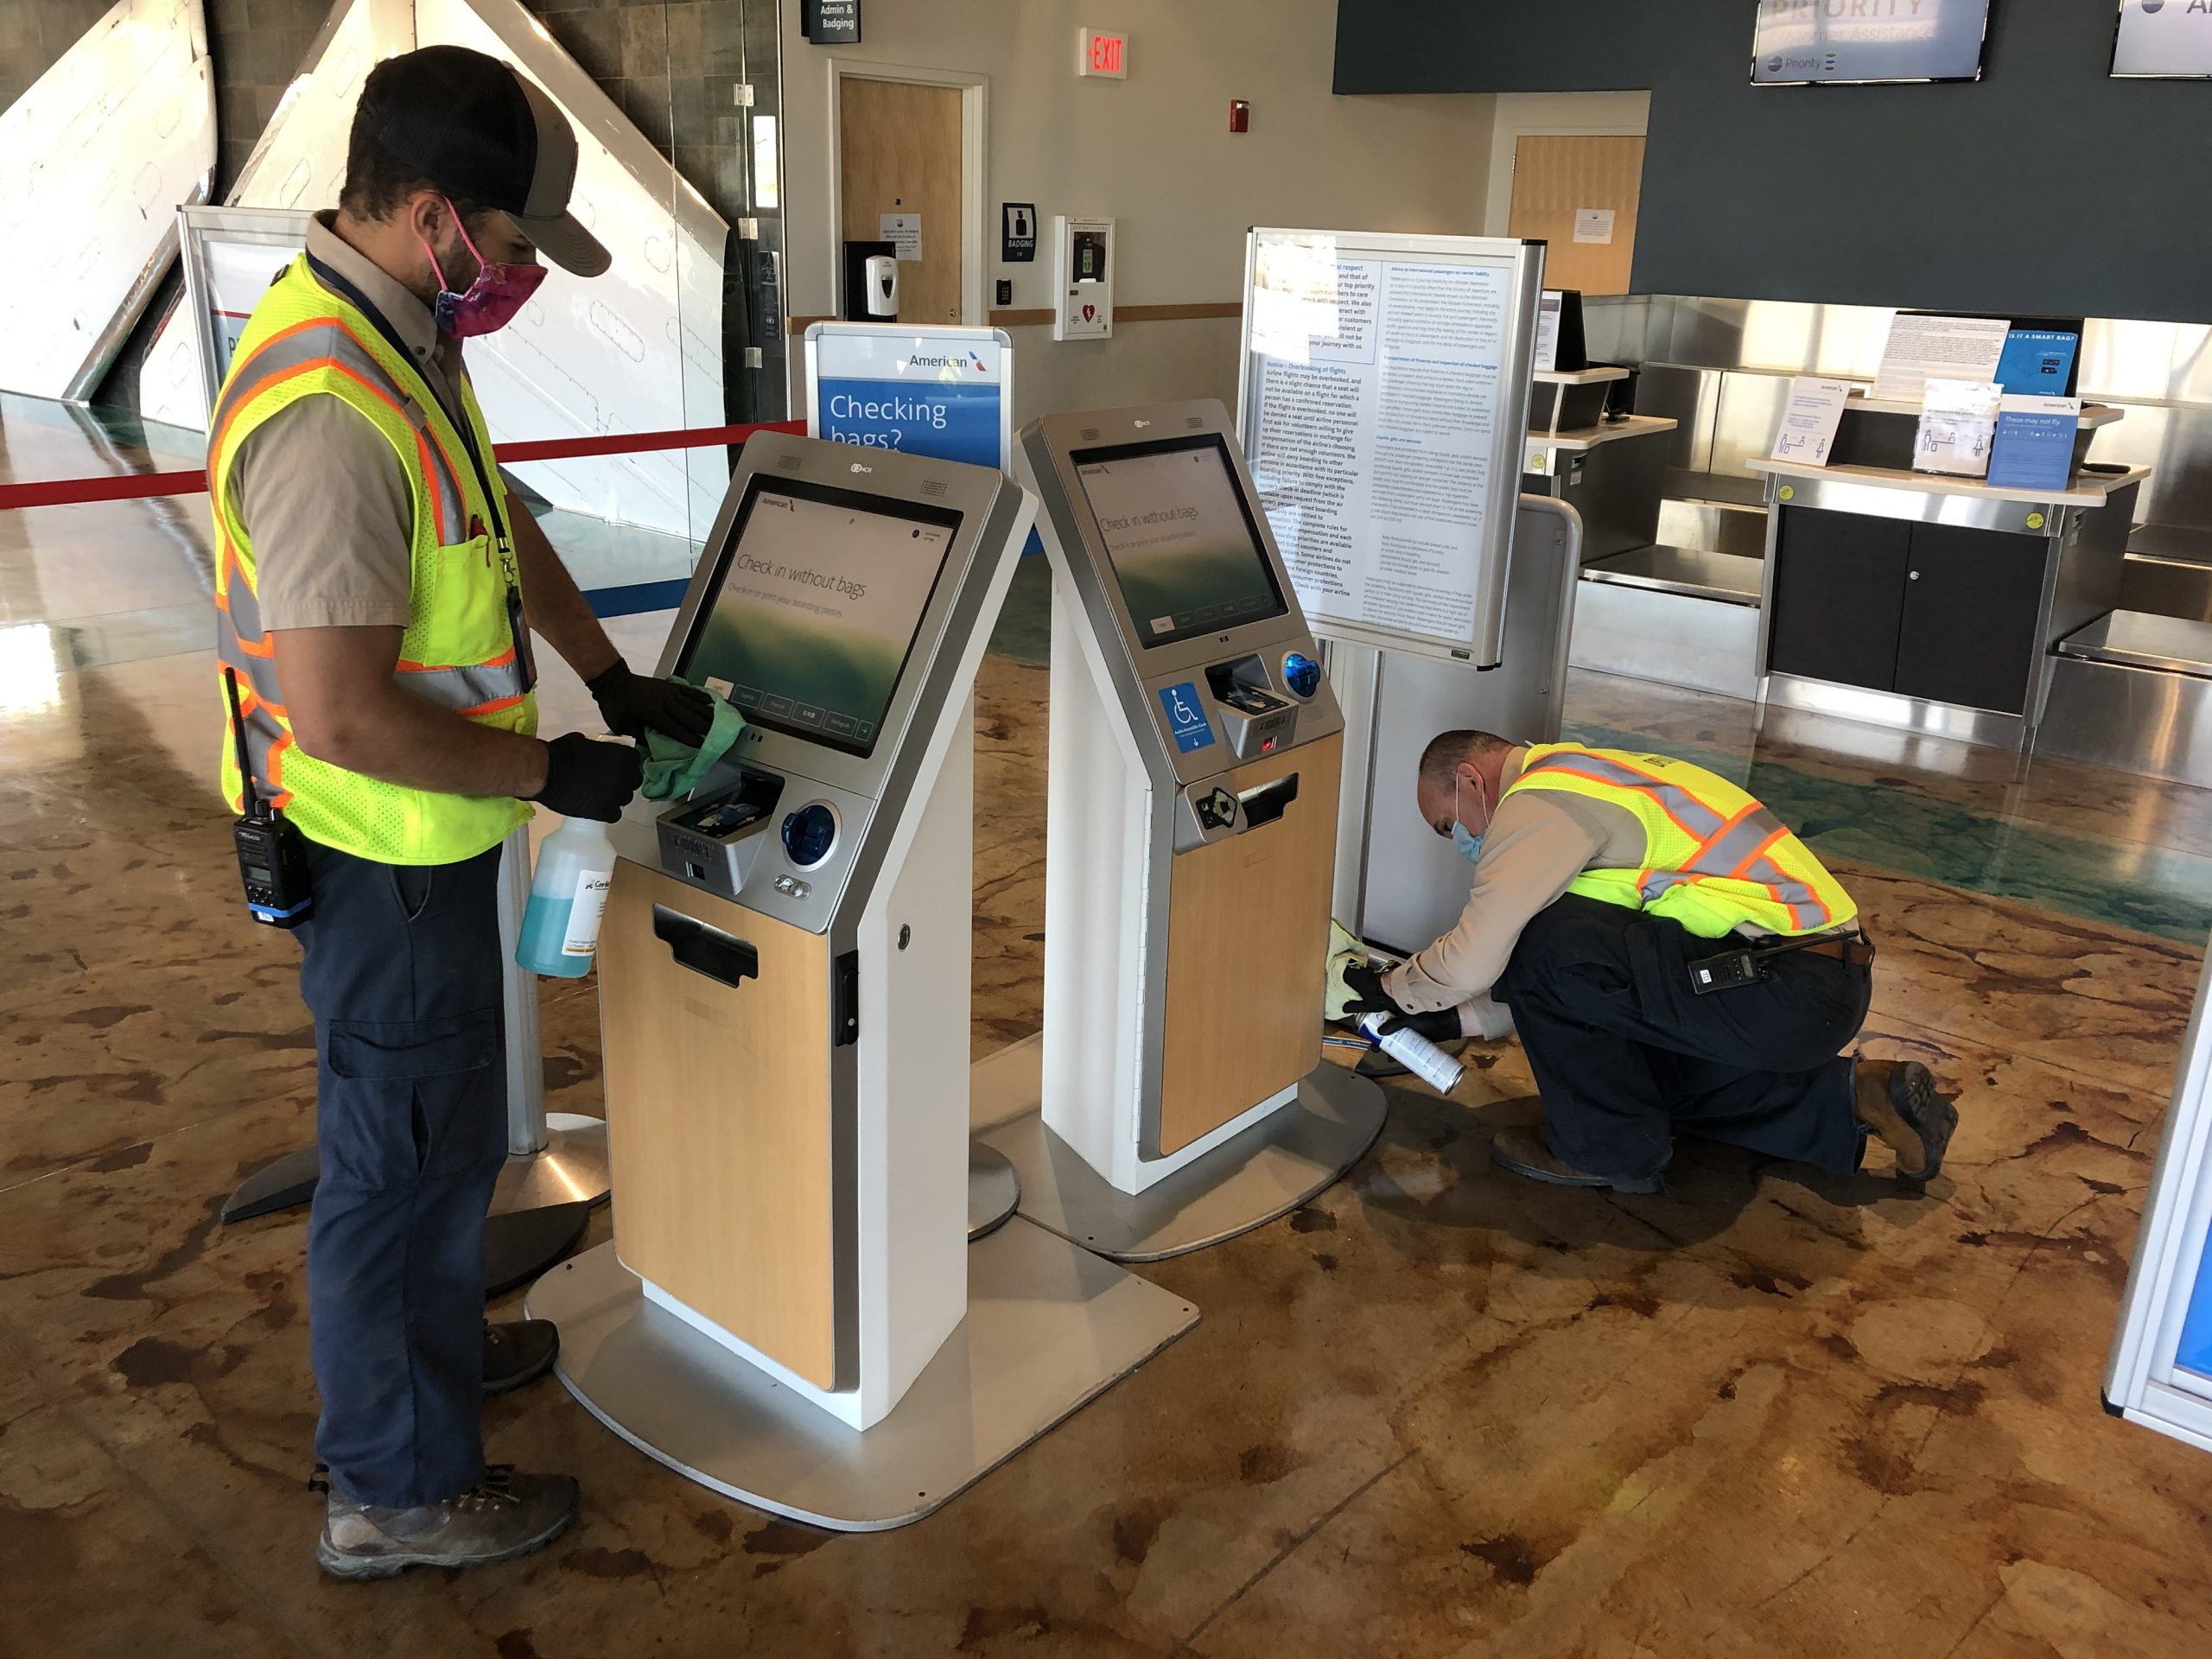 SBP workers cleaning terminal airline kiosks